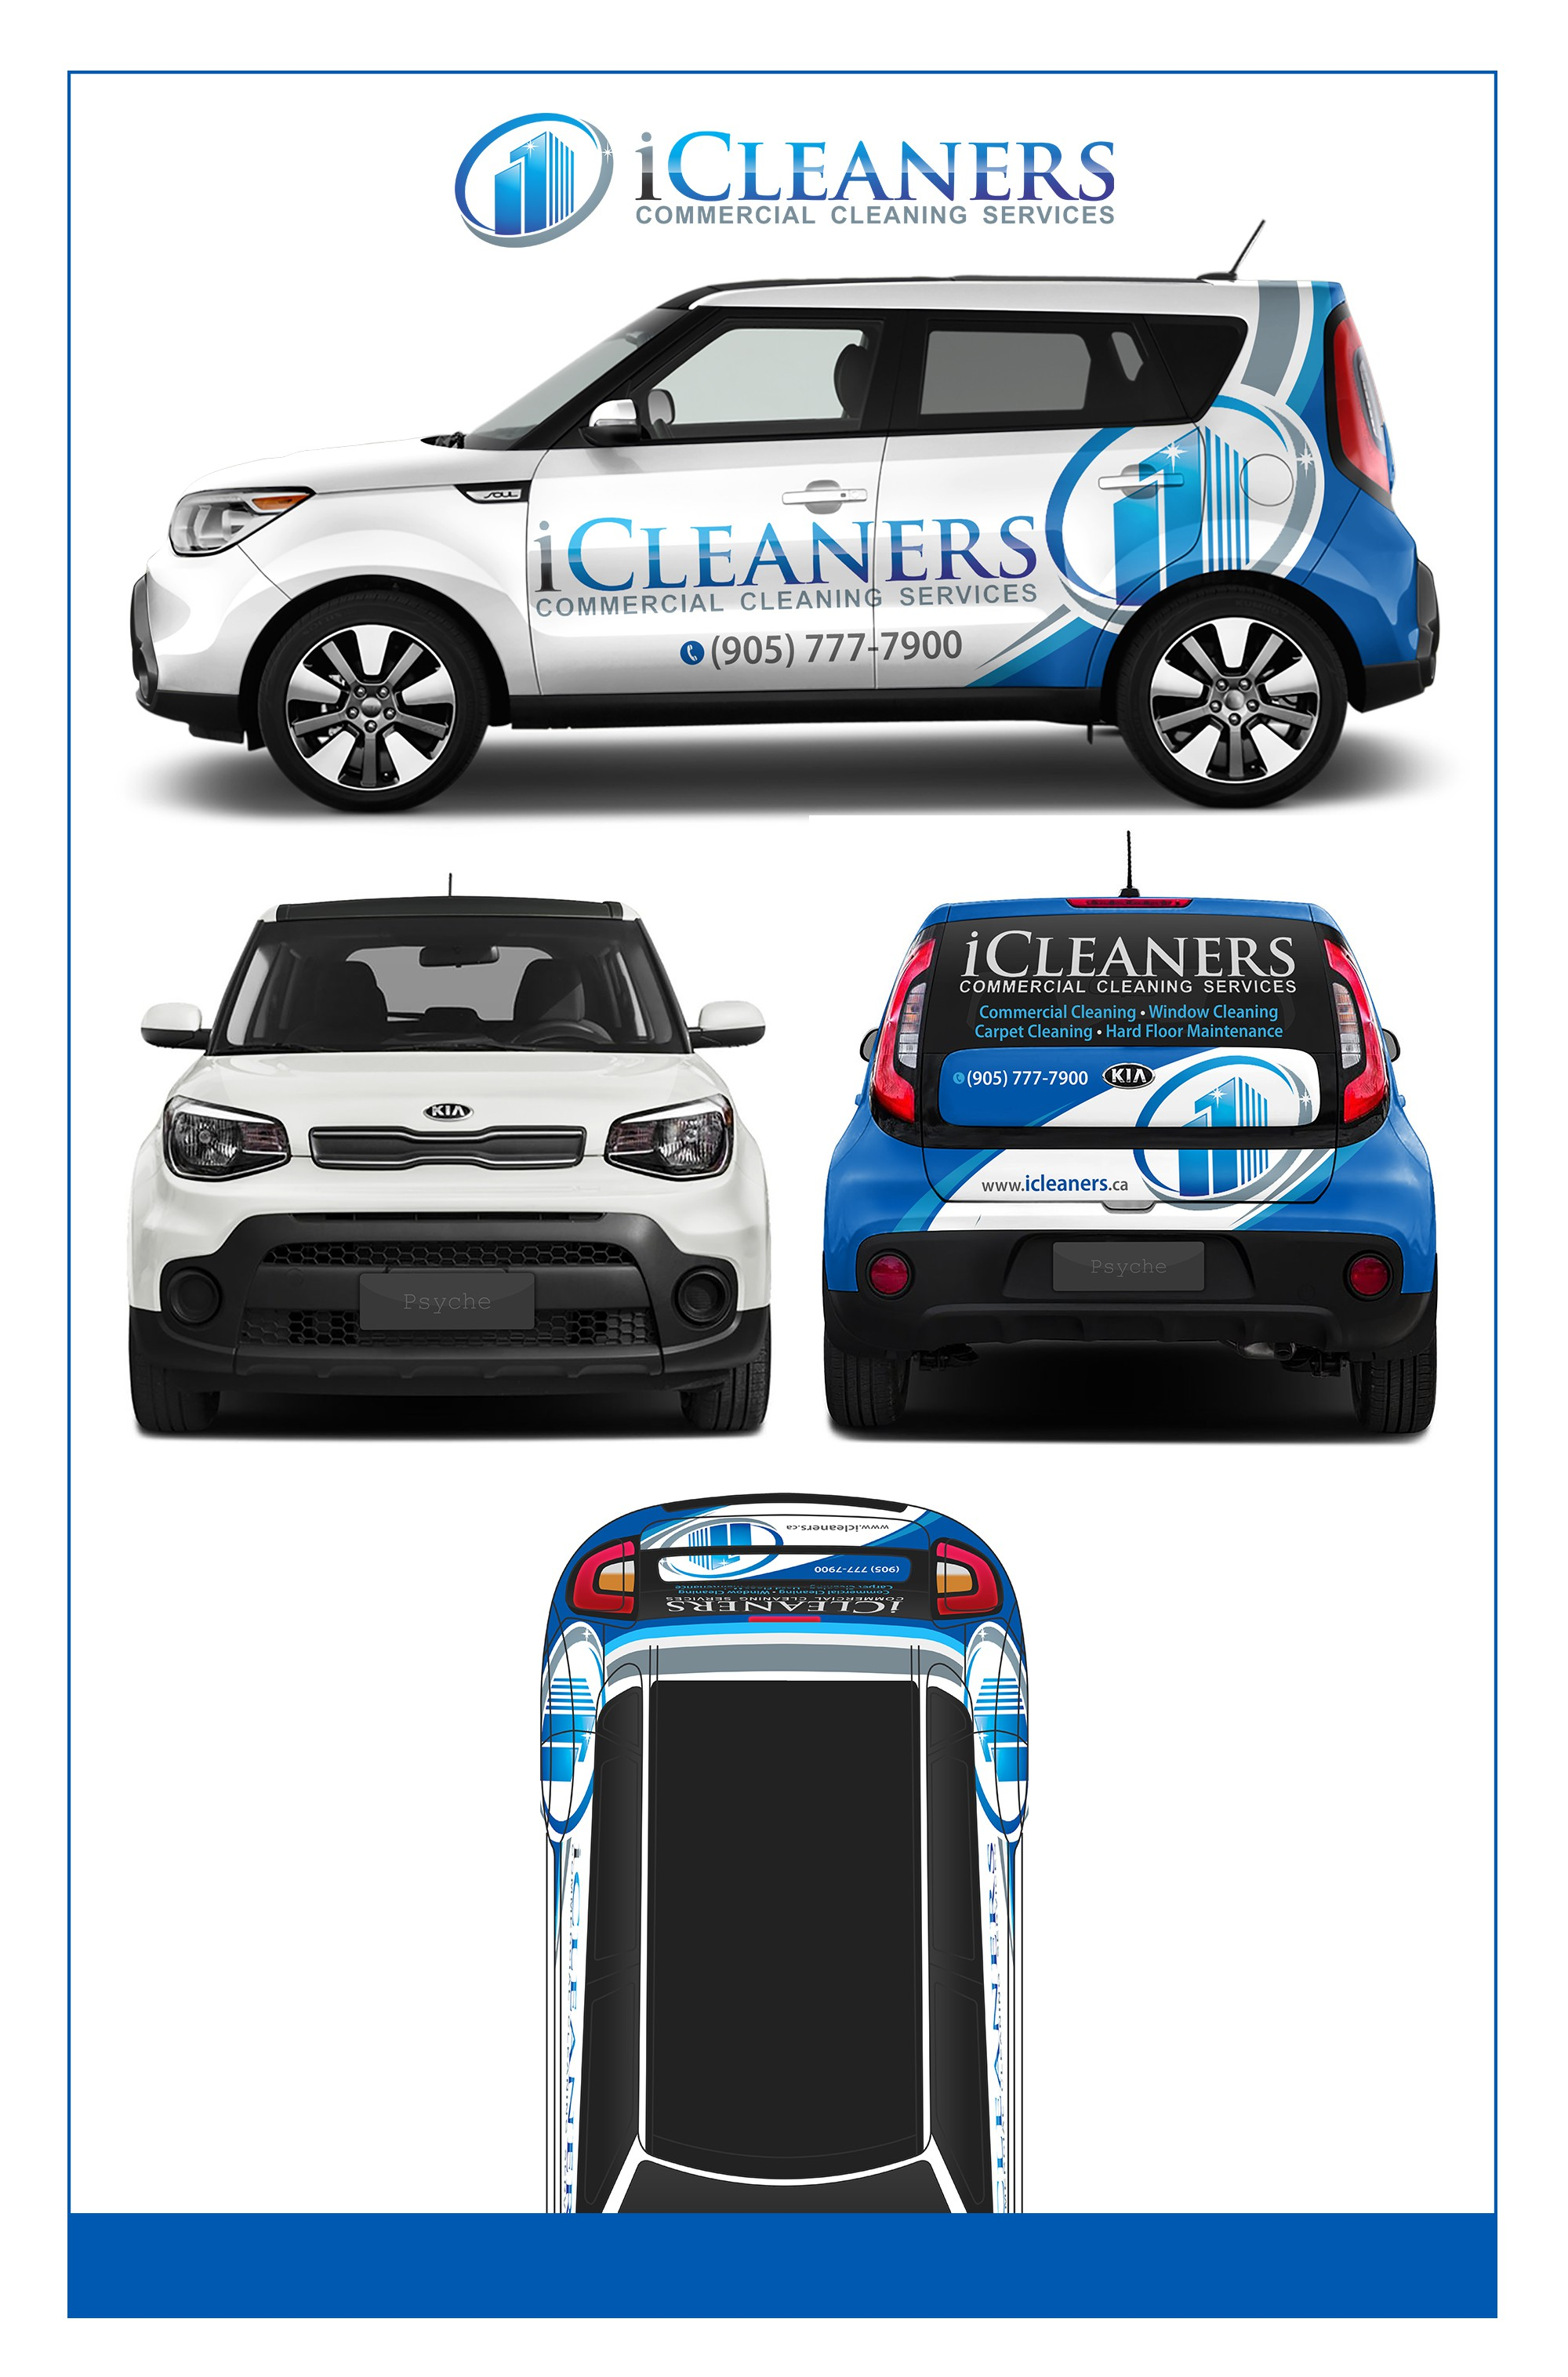 Unique Vehicle Wrap Required for Commercial Cleaning Company